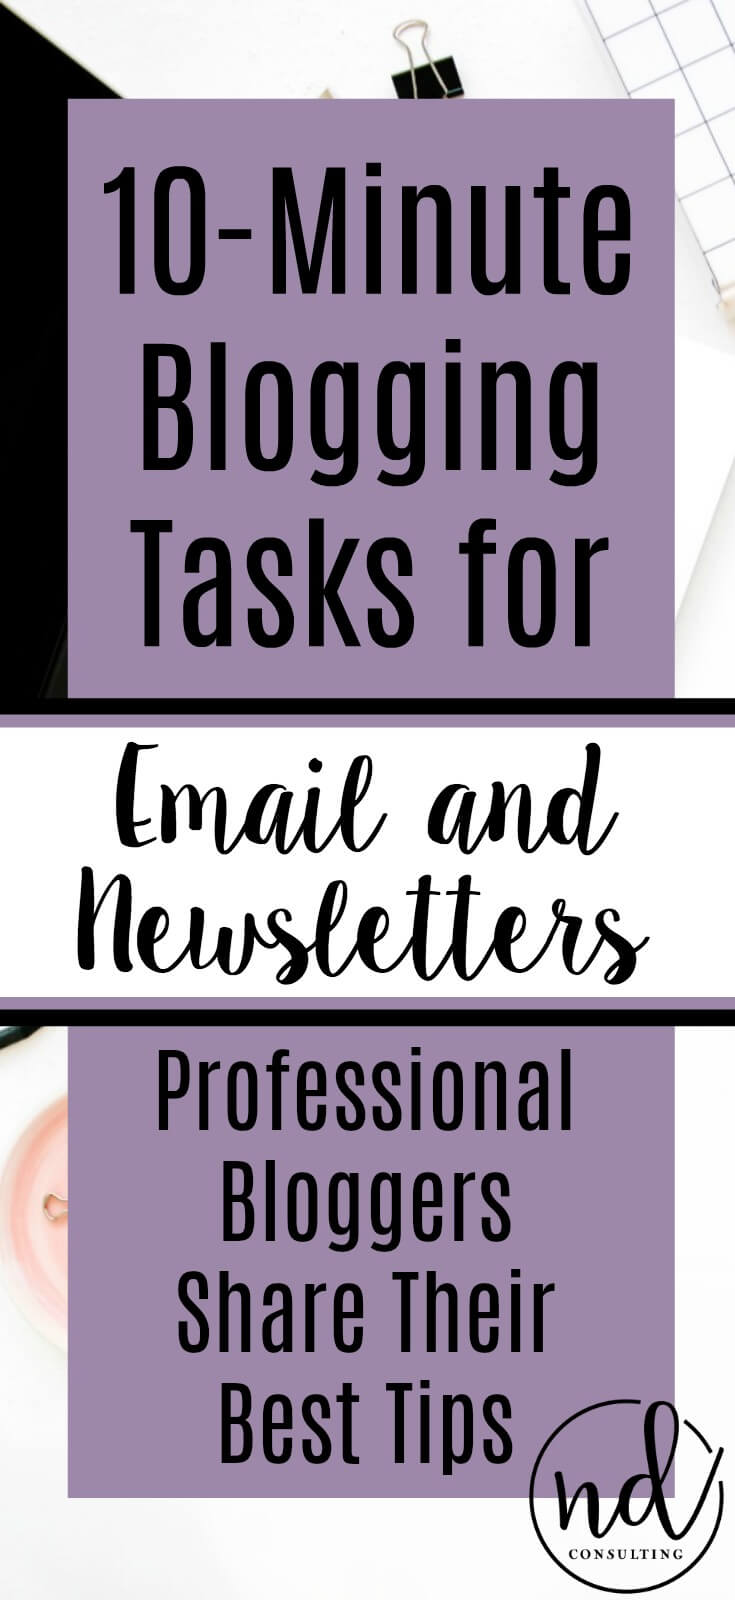 10 Minute Blogging Quick Tips for Email and Newsletters for Blogs